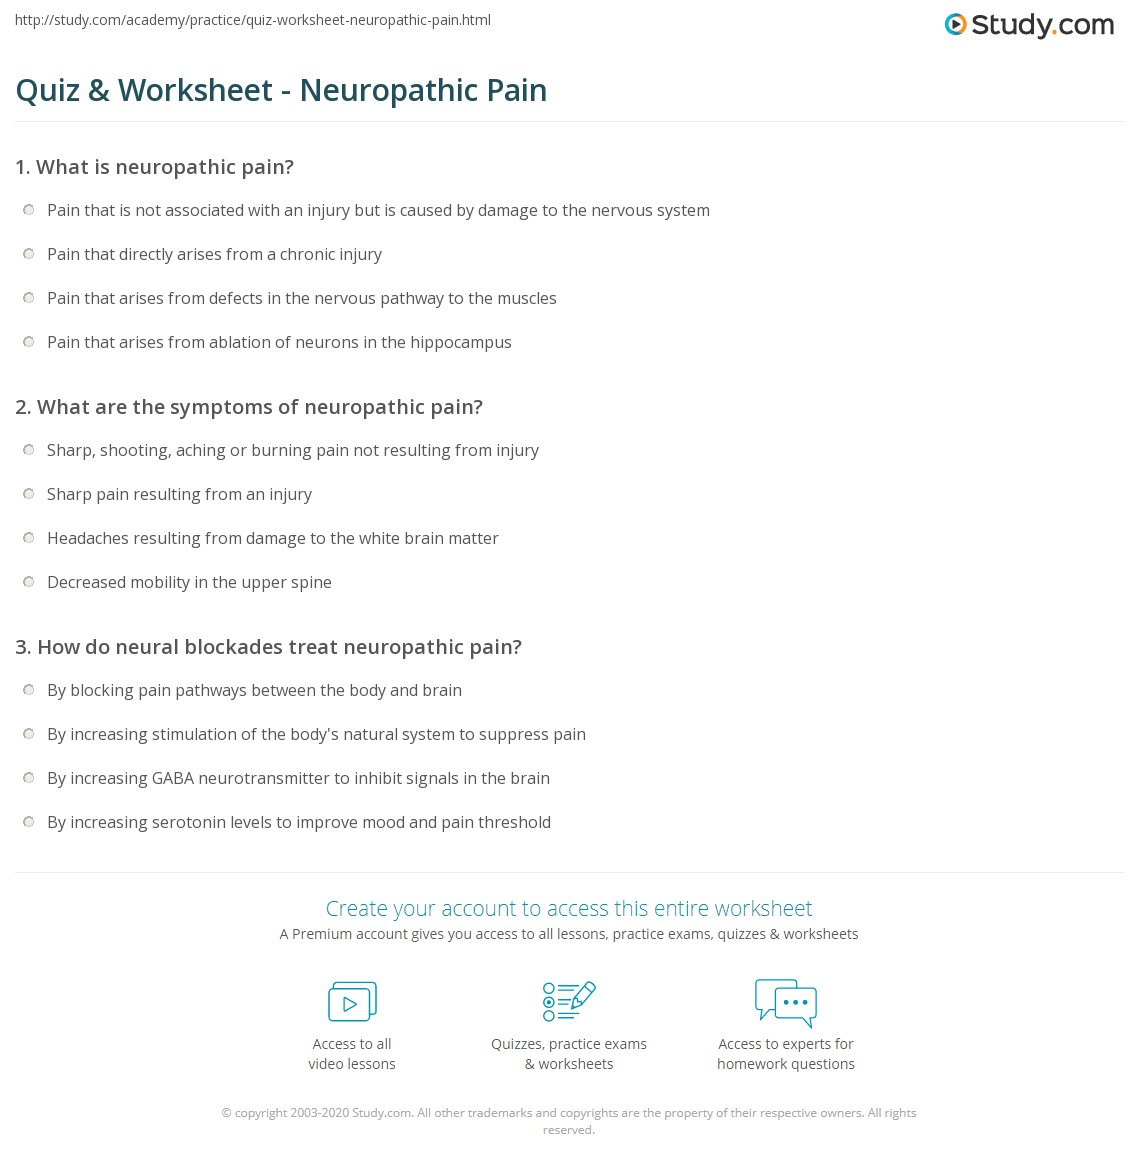 quiz & worksheet - neuropathic pain | study